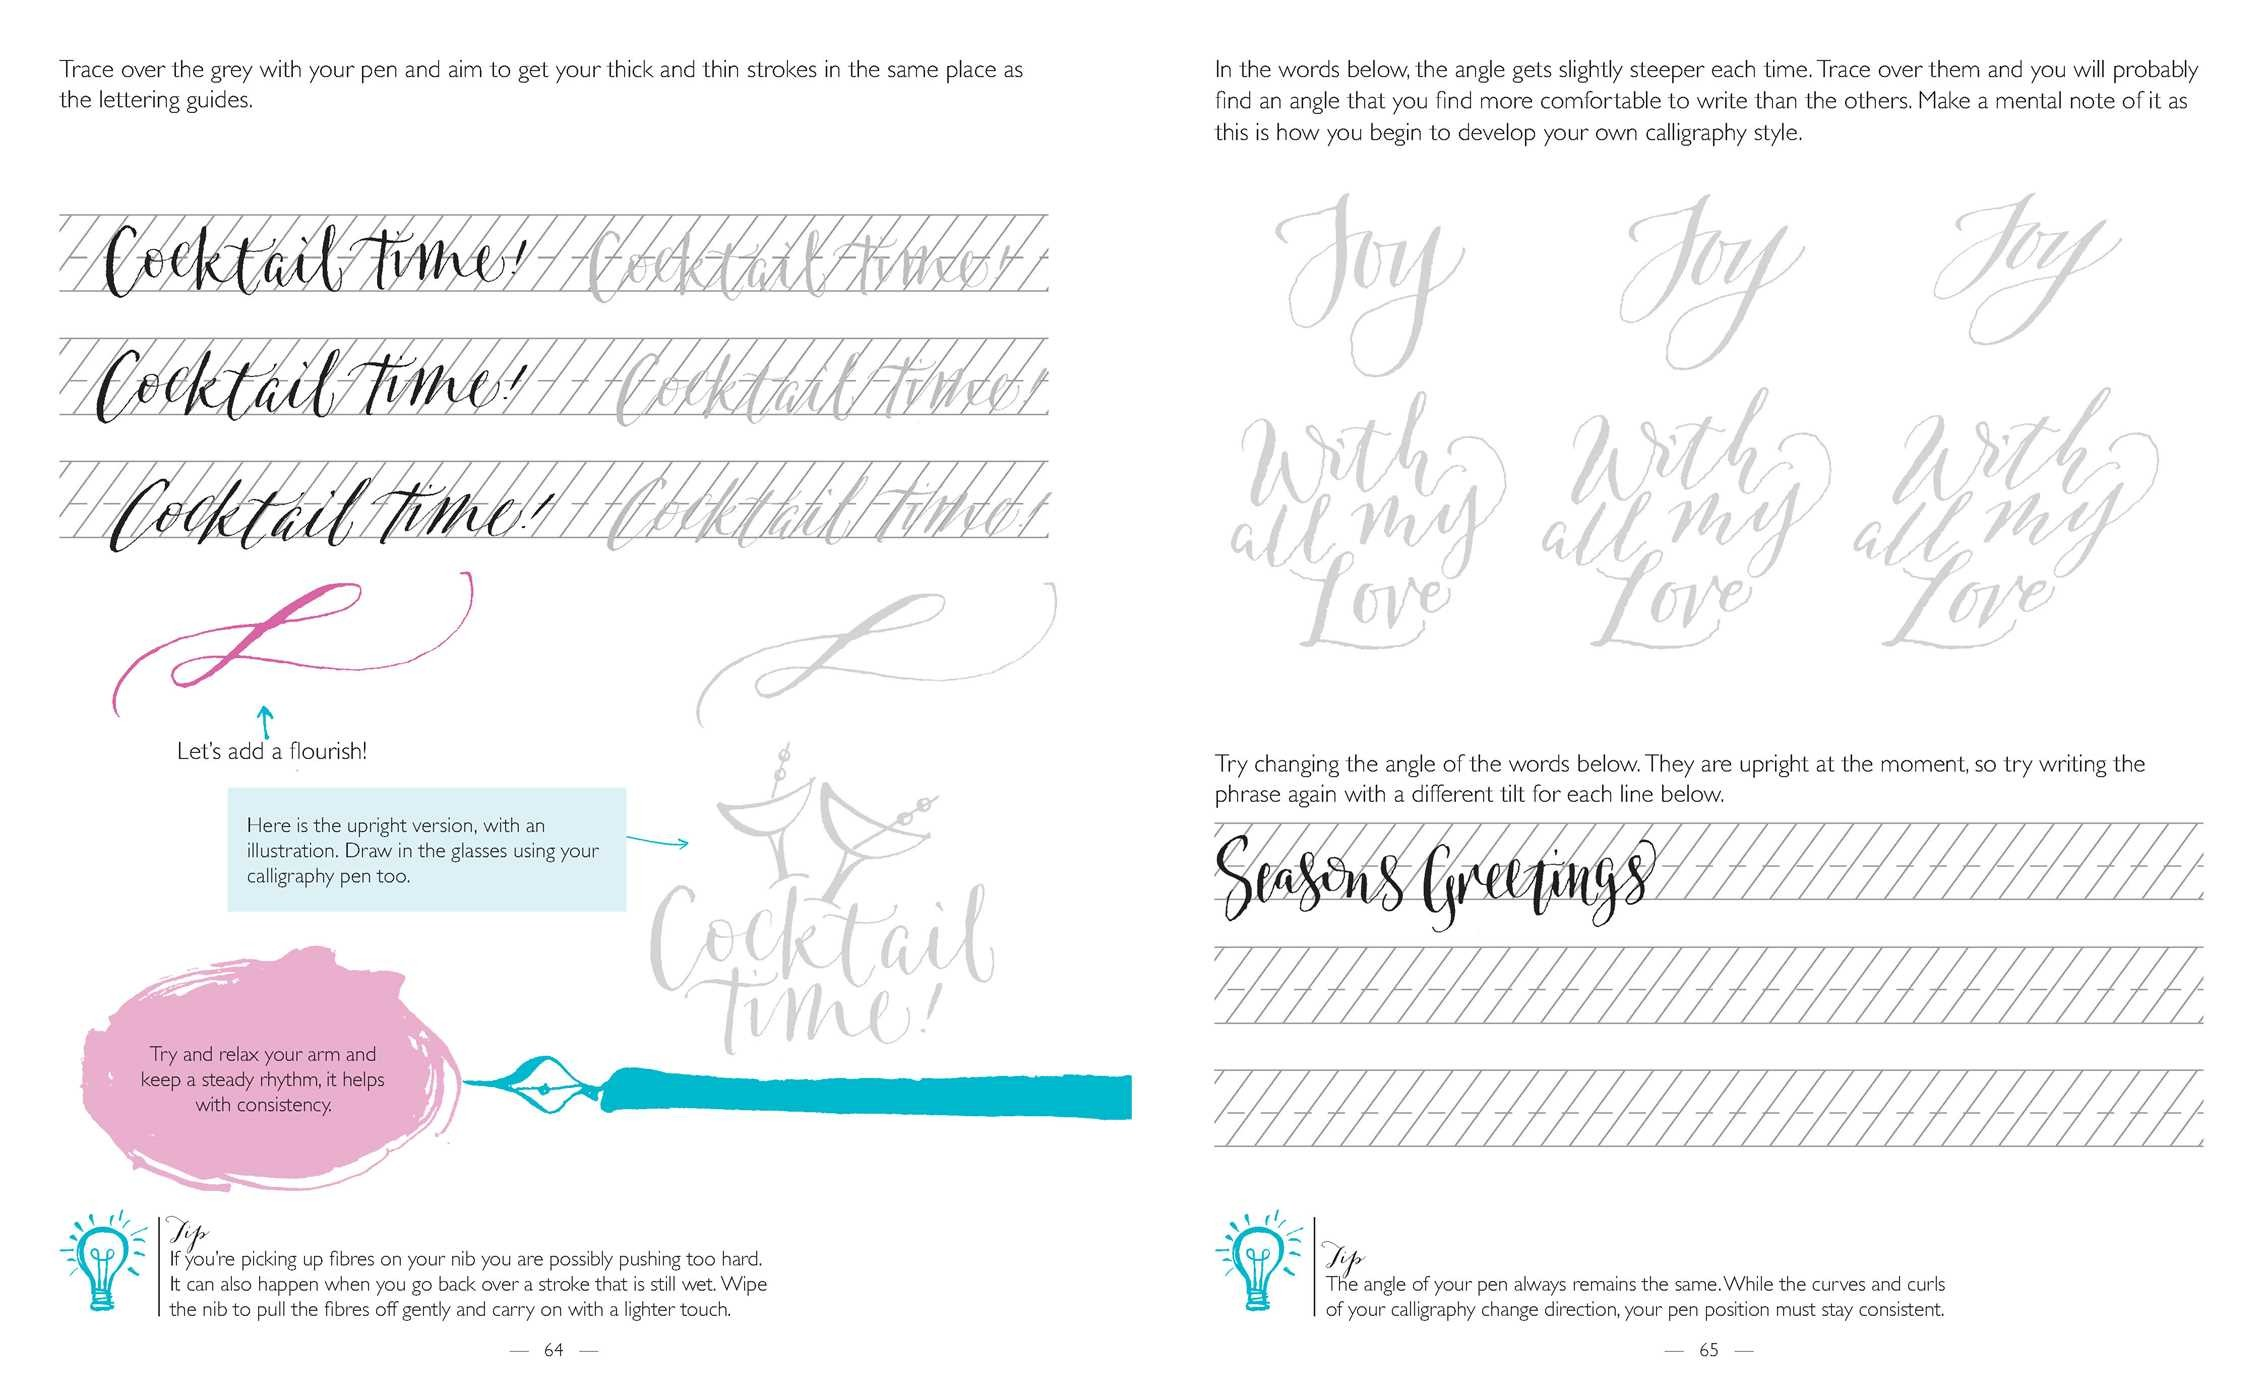 Secrets of modern calligraphy 9781681883823.in05